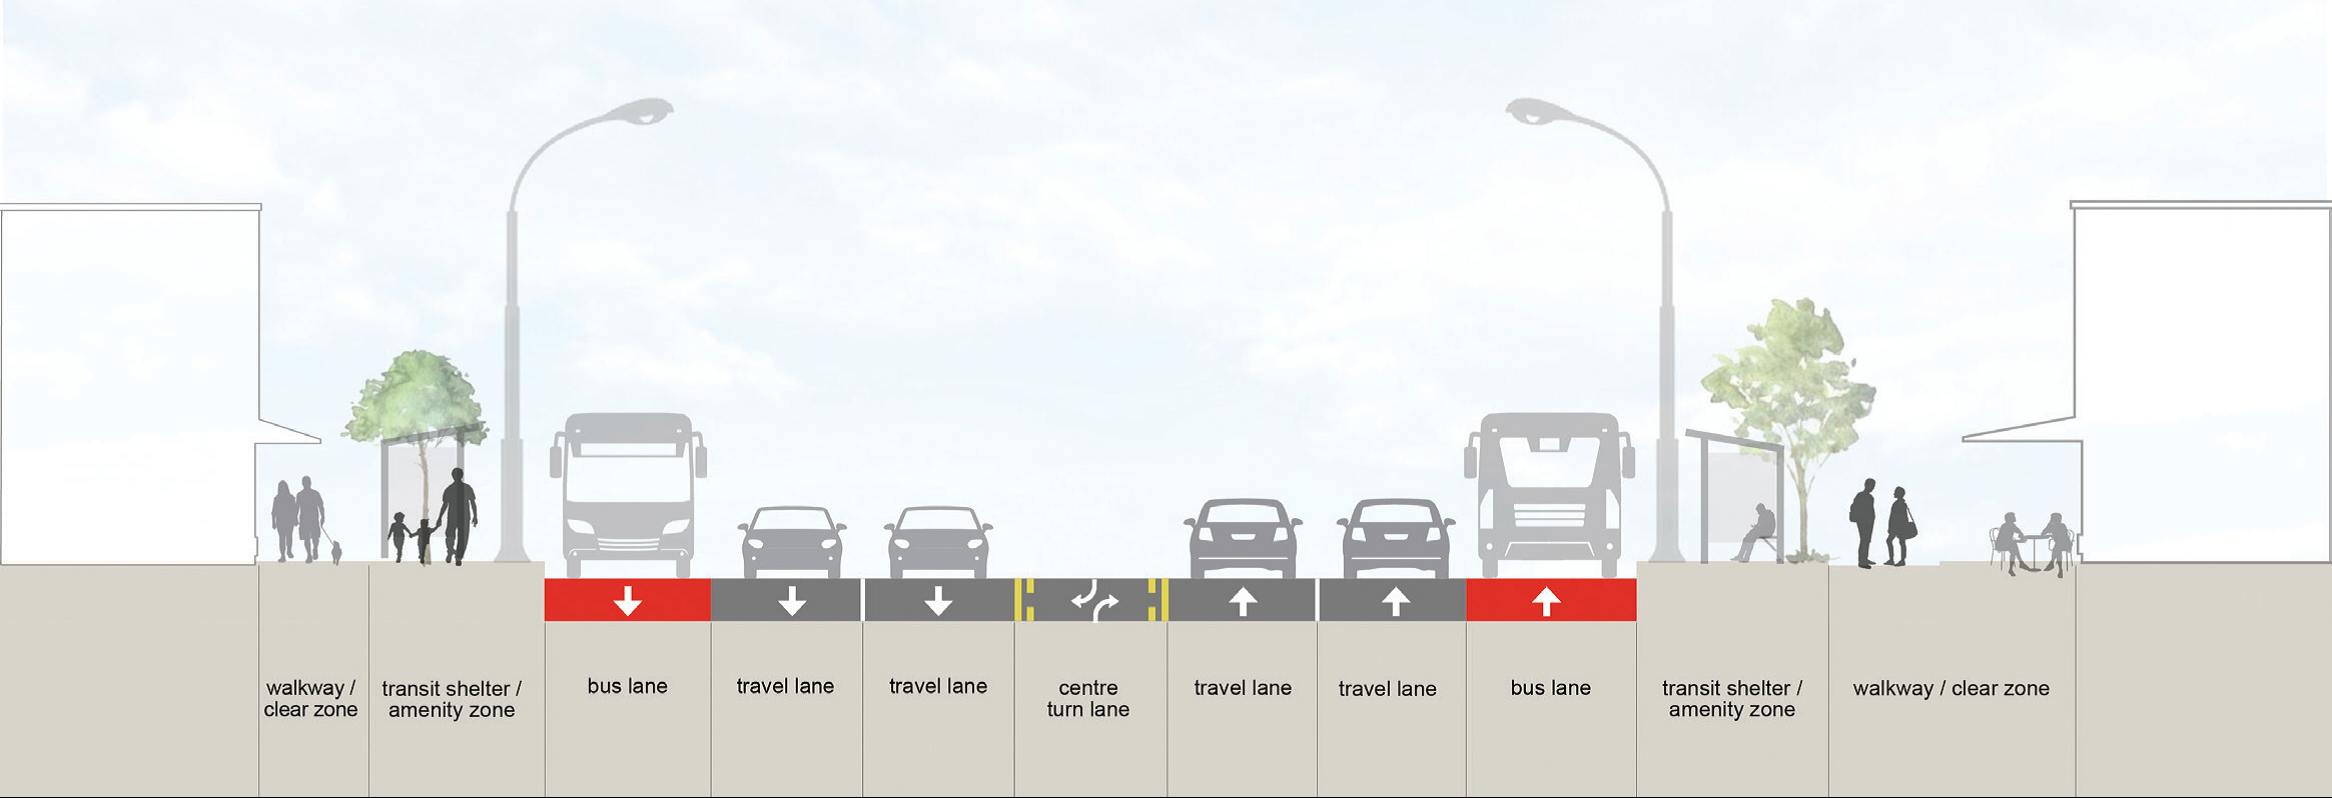 Diagram indicating the lane configuration on Eglinton